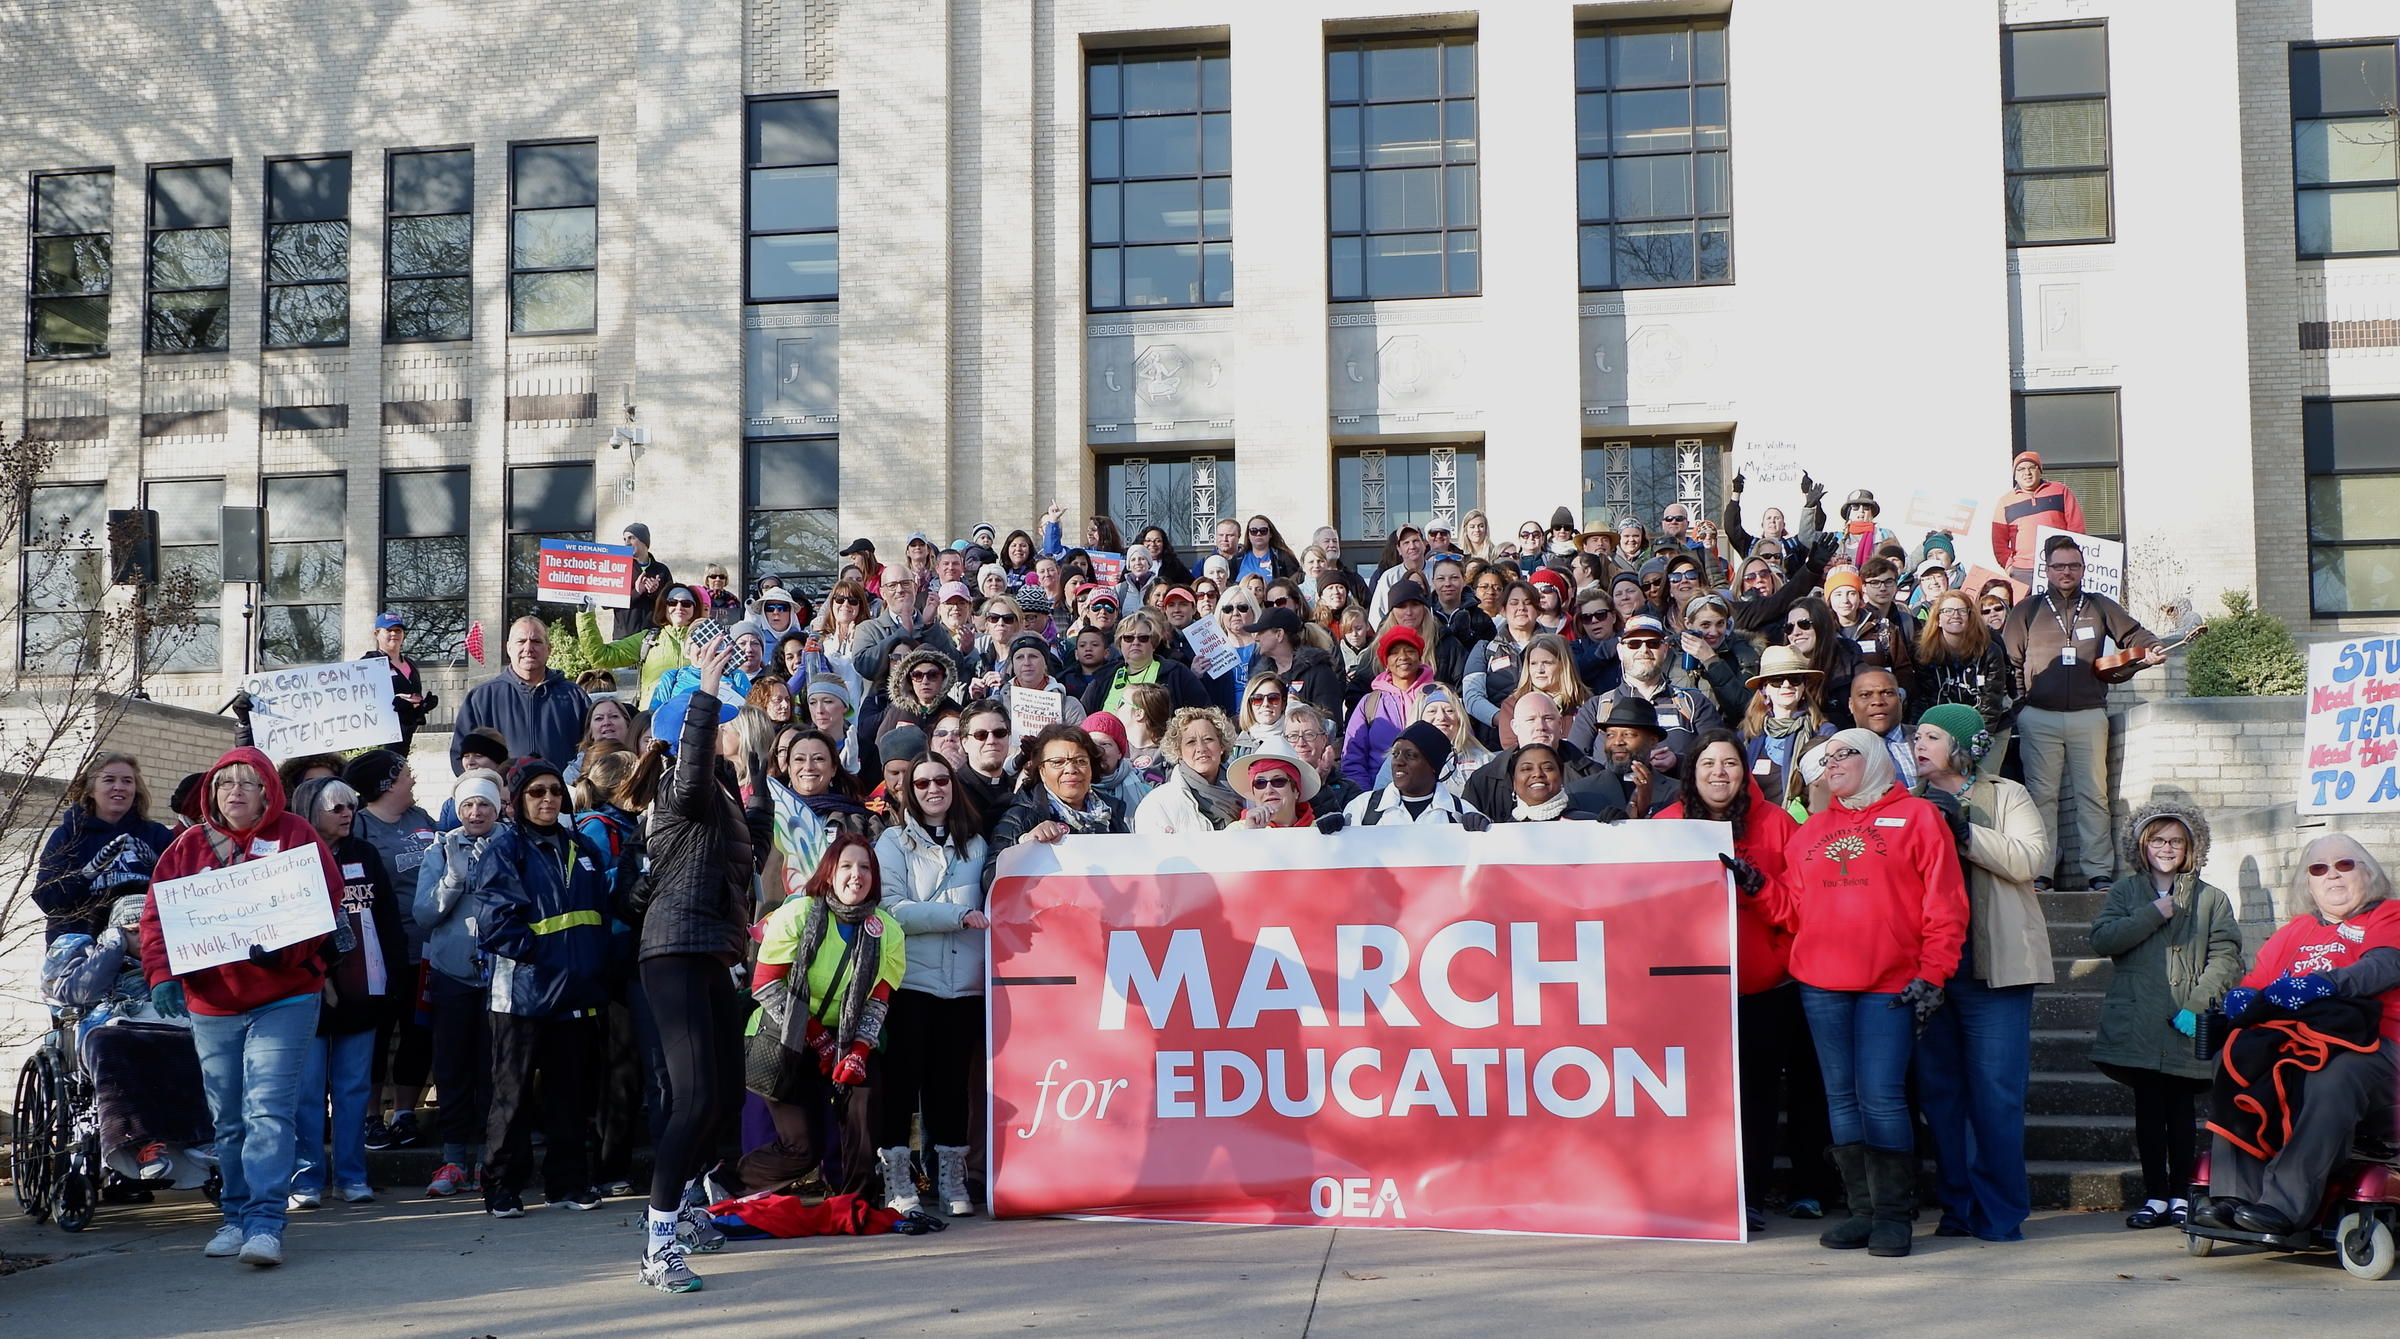 'Our feet are gross': Oklahoma teachers build comradeship on 110-mile march